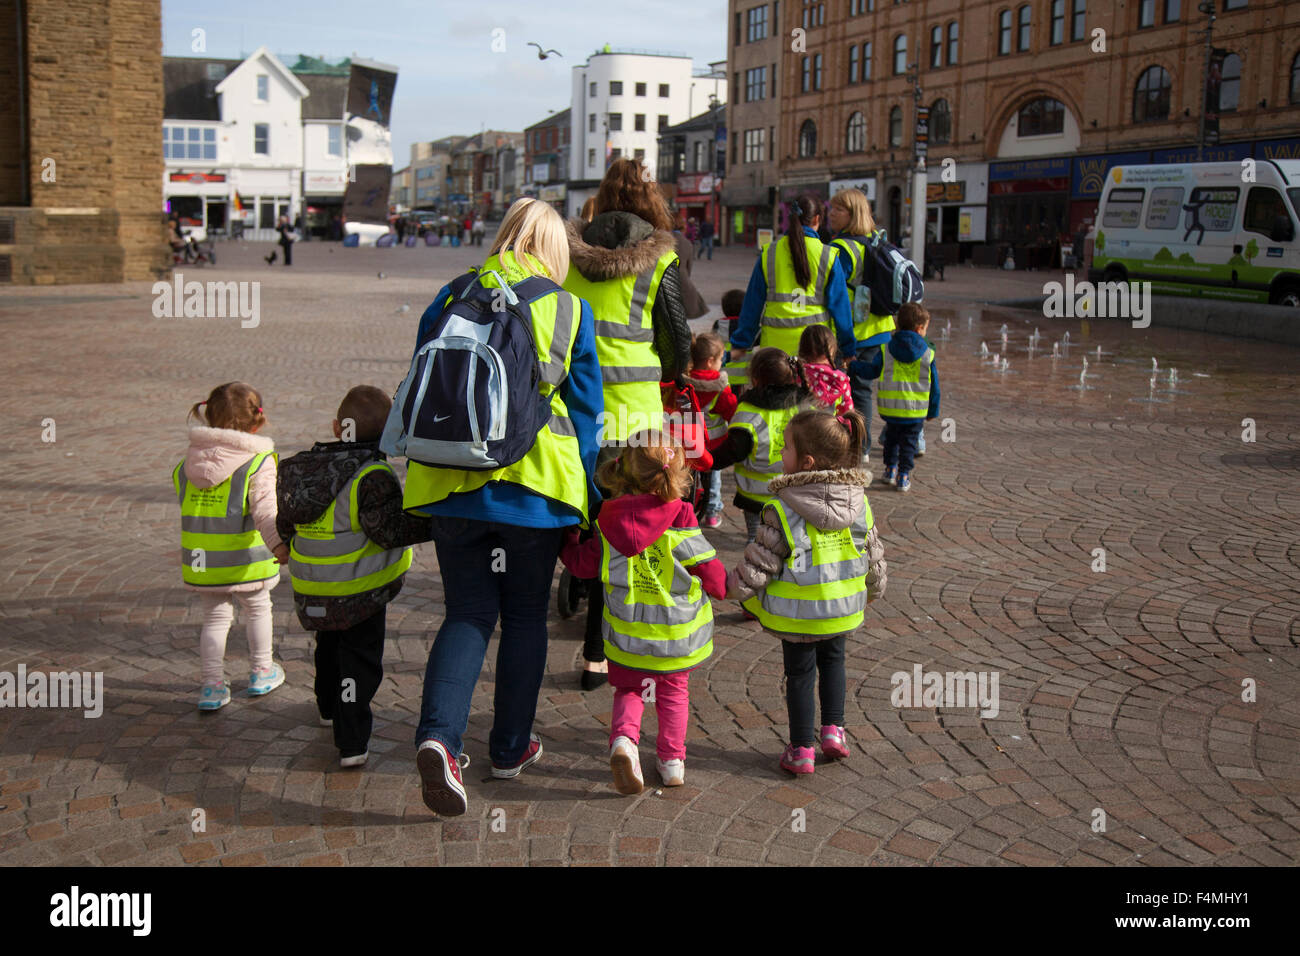 Safeguarding Pre-School children wearing protective fluorescent hi-vis hazard jackets on walk around Blackpool with - Stock Image